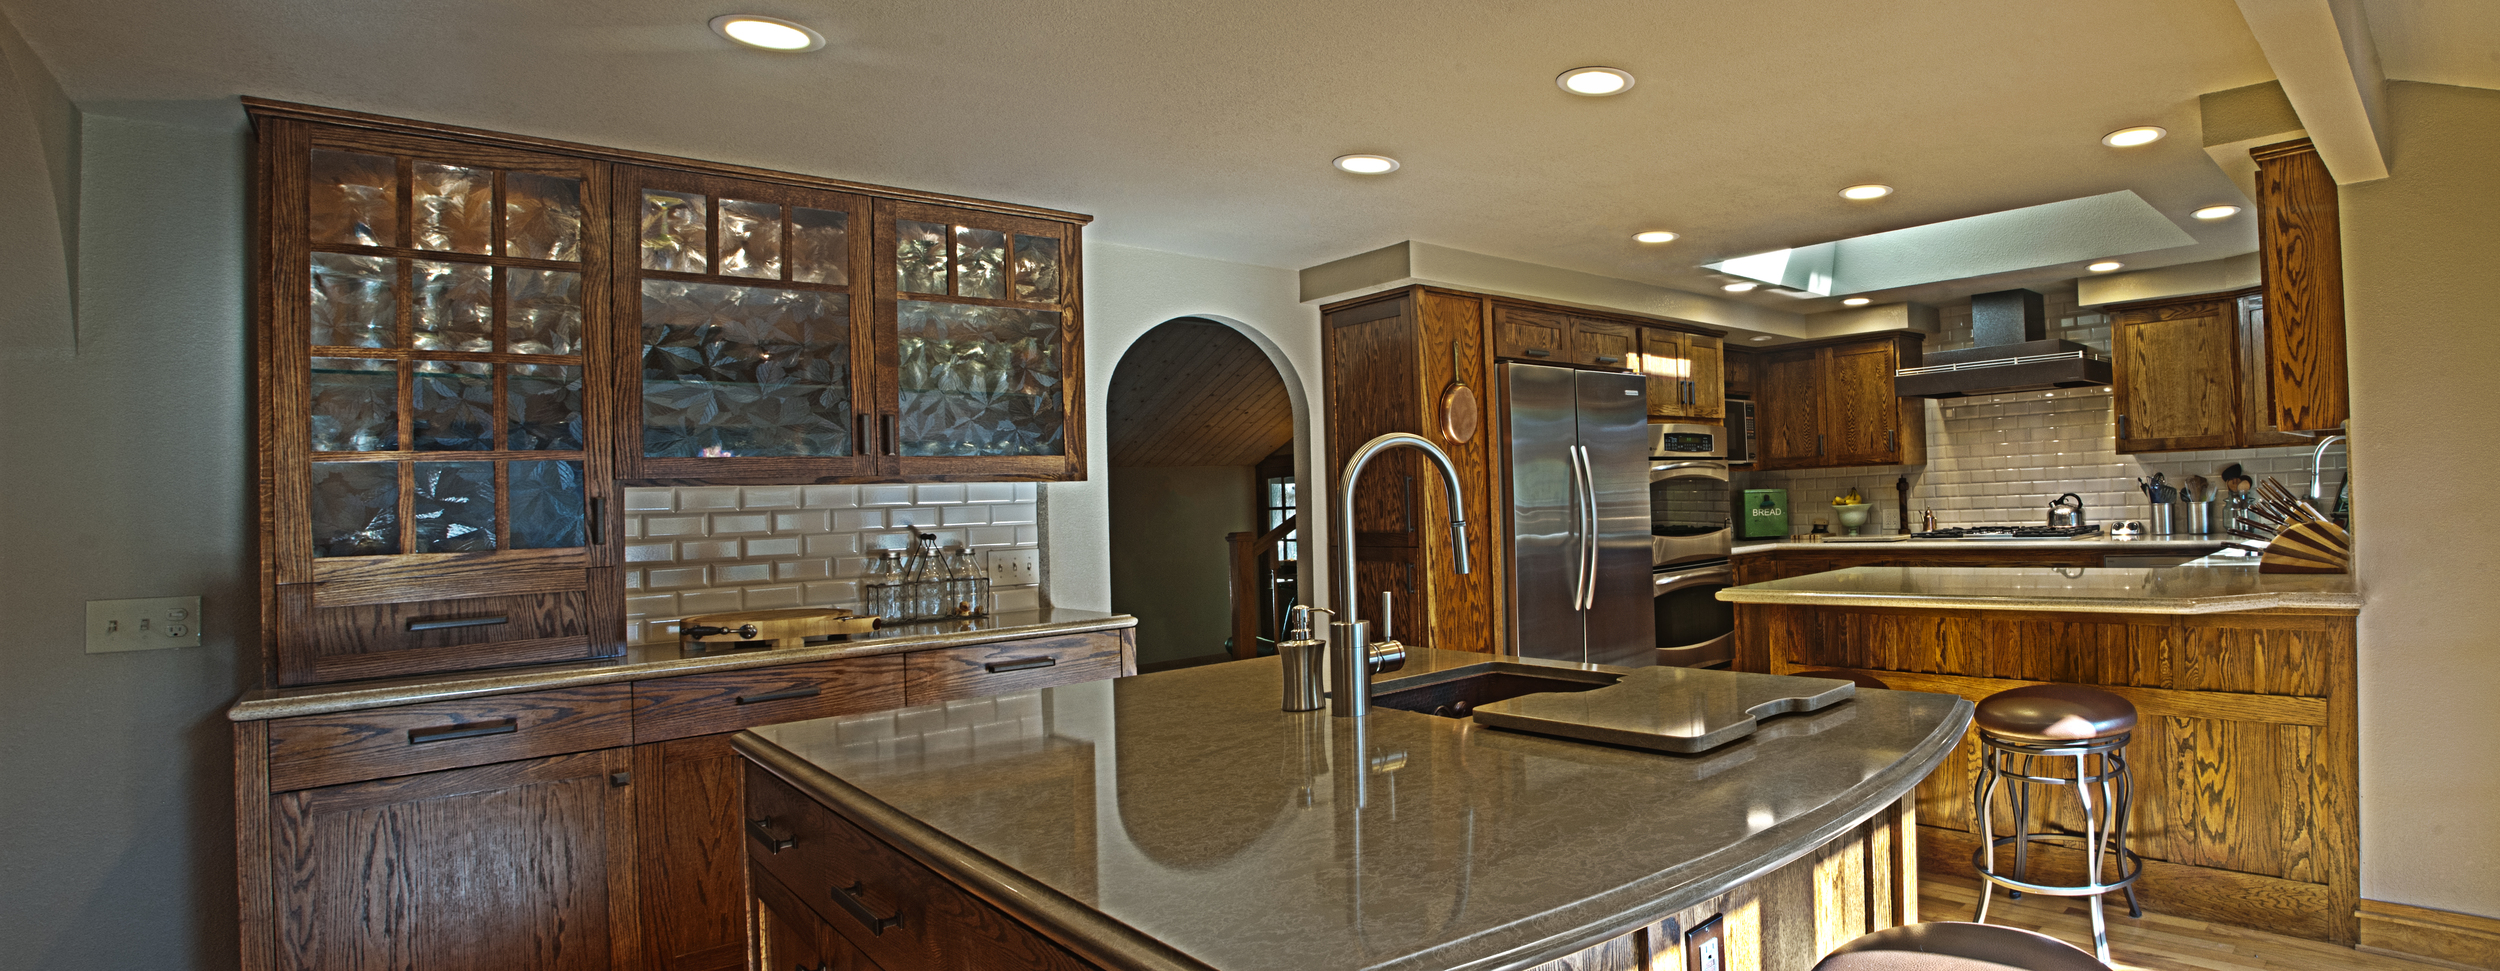 Kitchen_Panorama.jpg